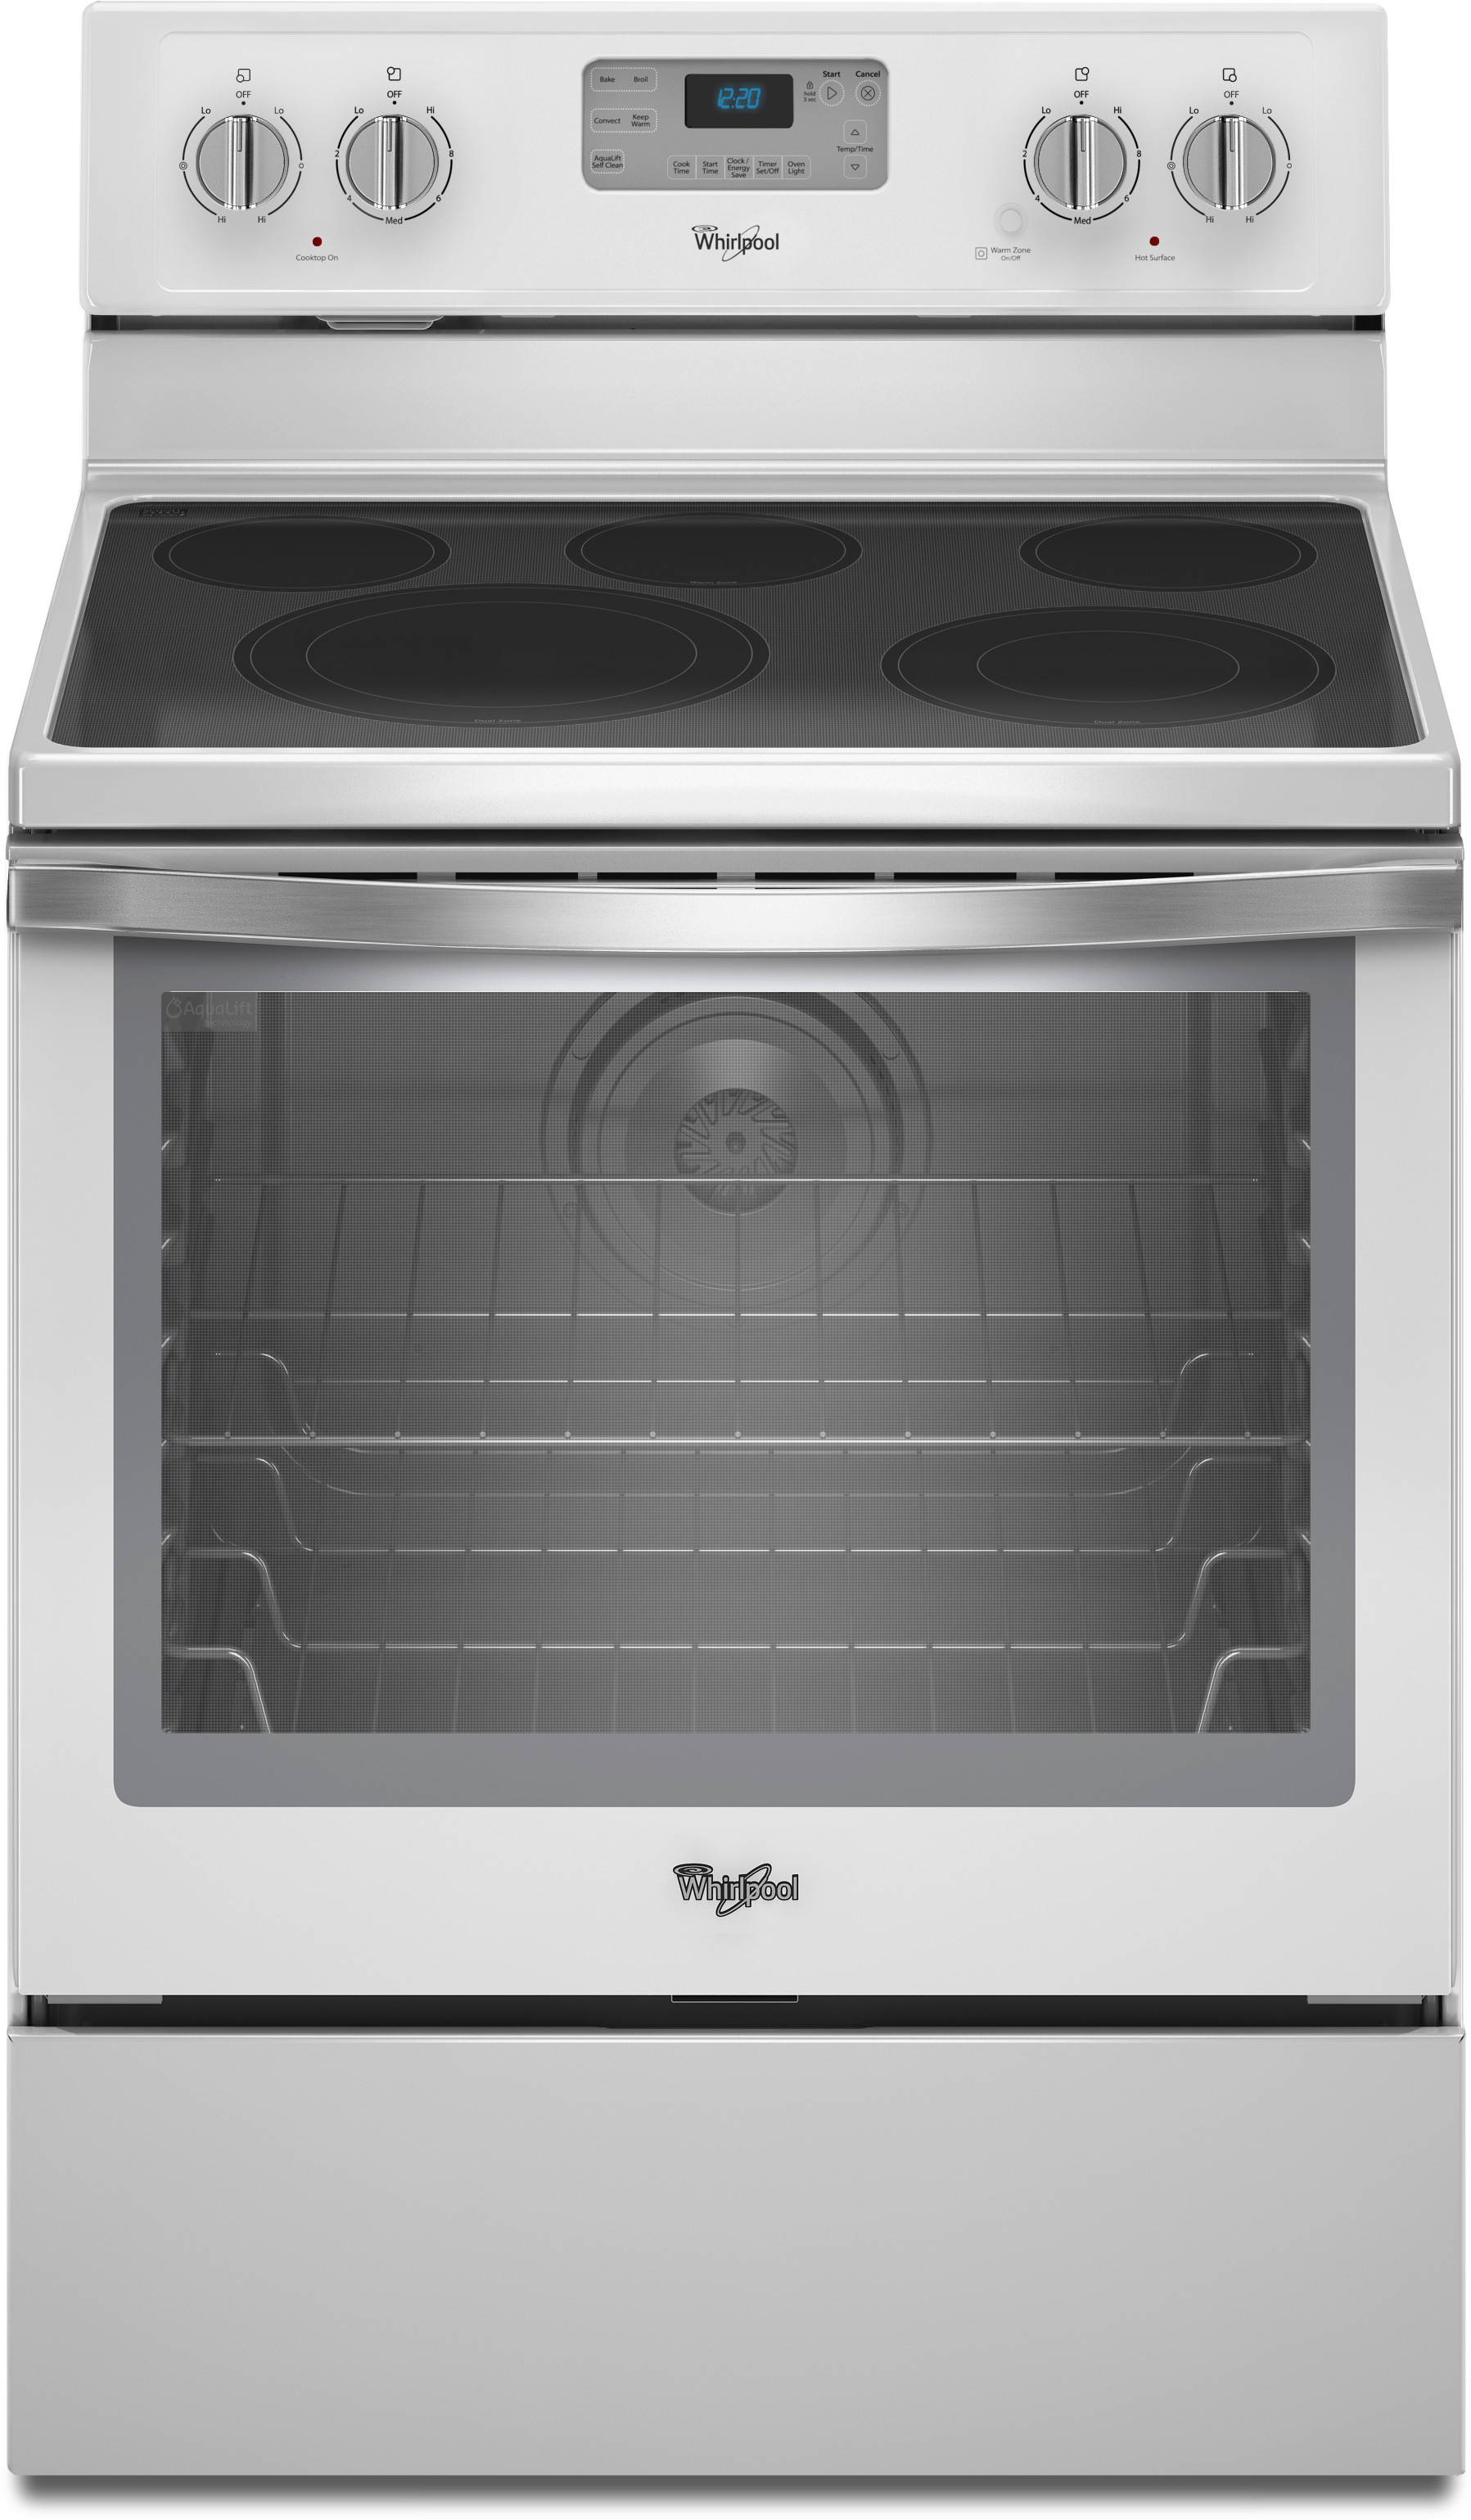 Countertop Ice Maker Menards : ... Zone, Max Capacity Recessed Rack and AquaLift Self Clean: White Ice